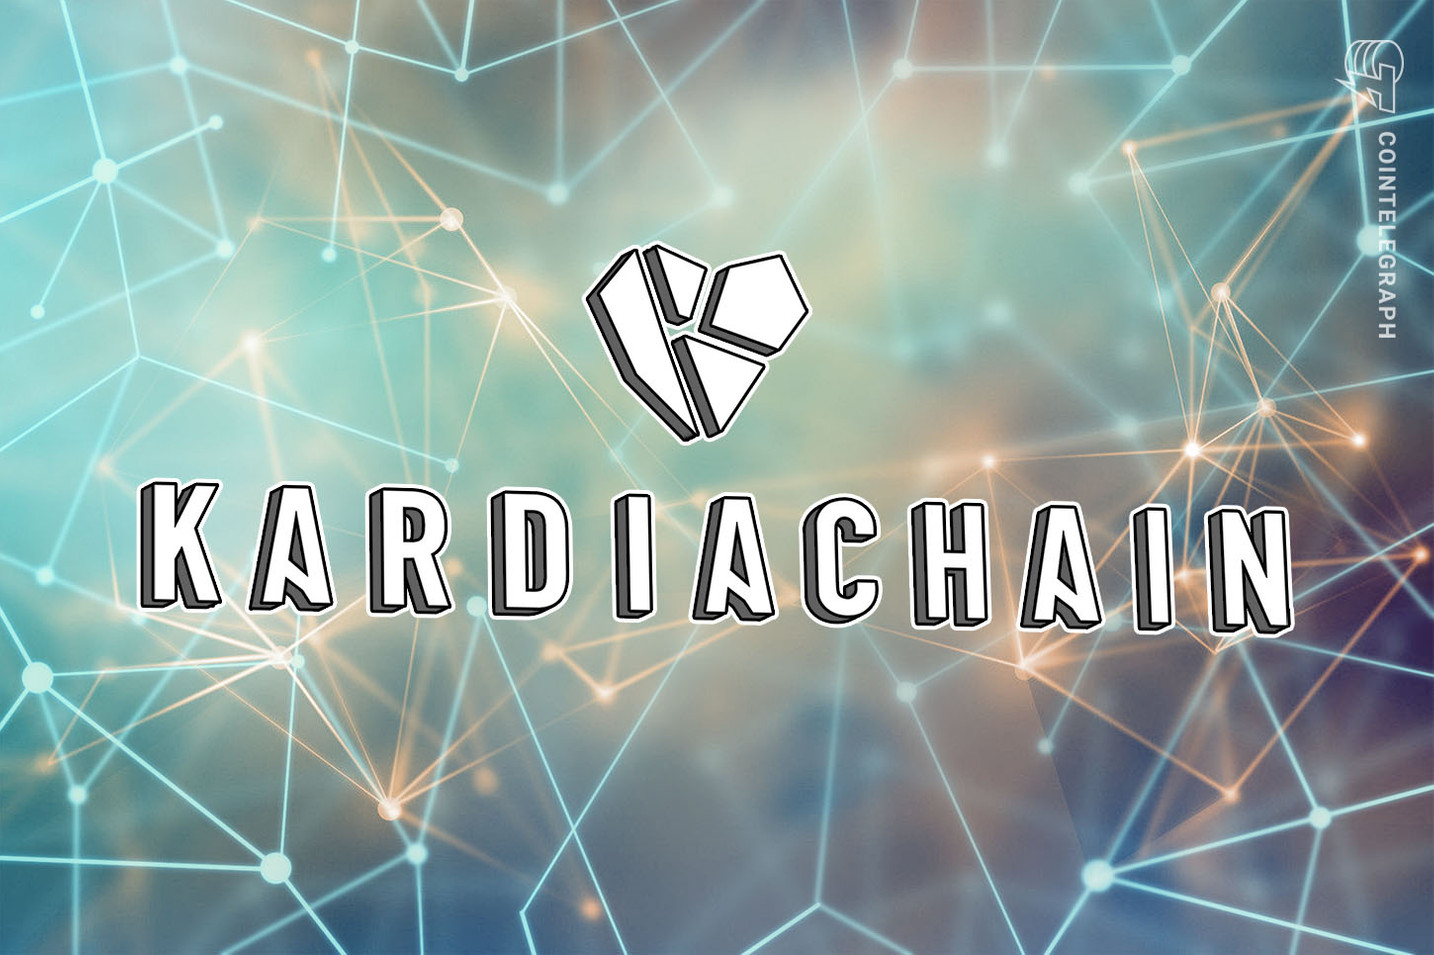 KardiaChain joins forces with EEA to help foster mass blockchain adoption in Asia